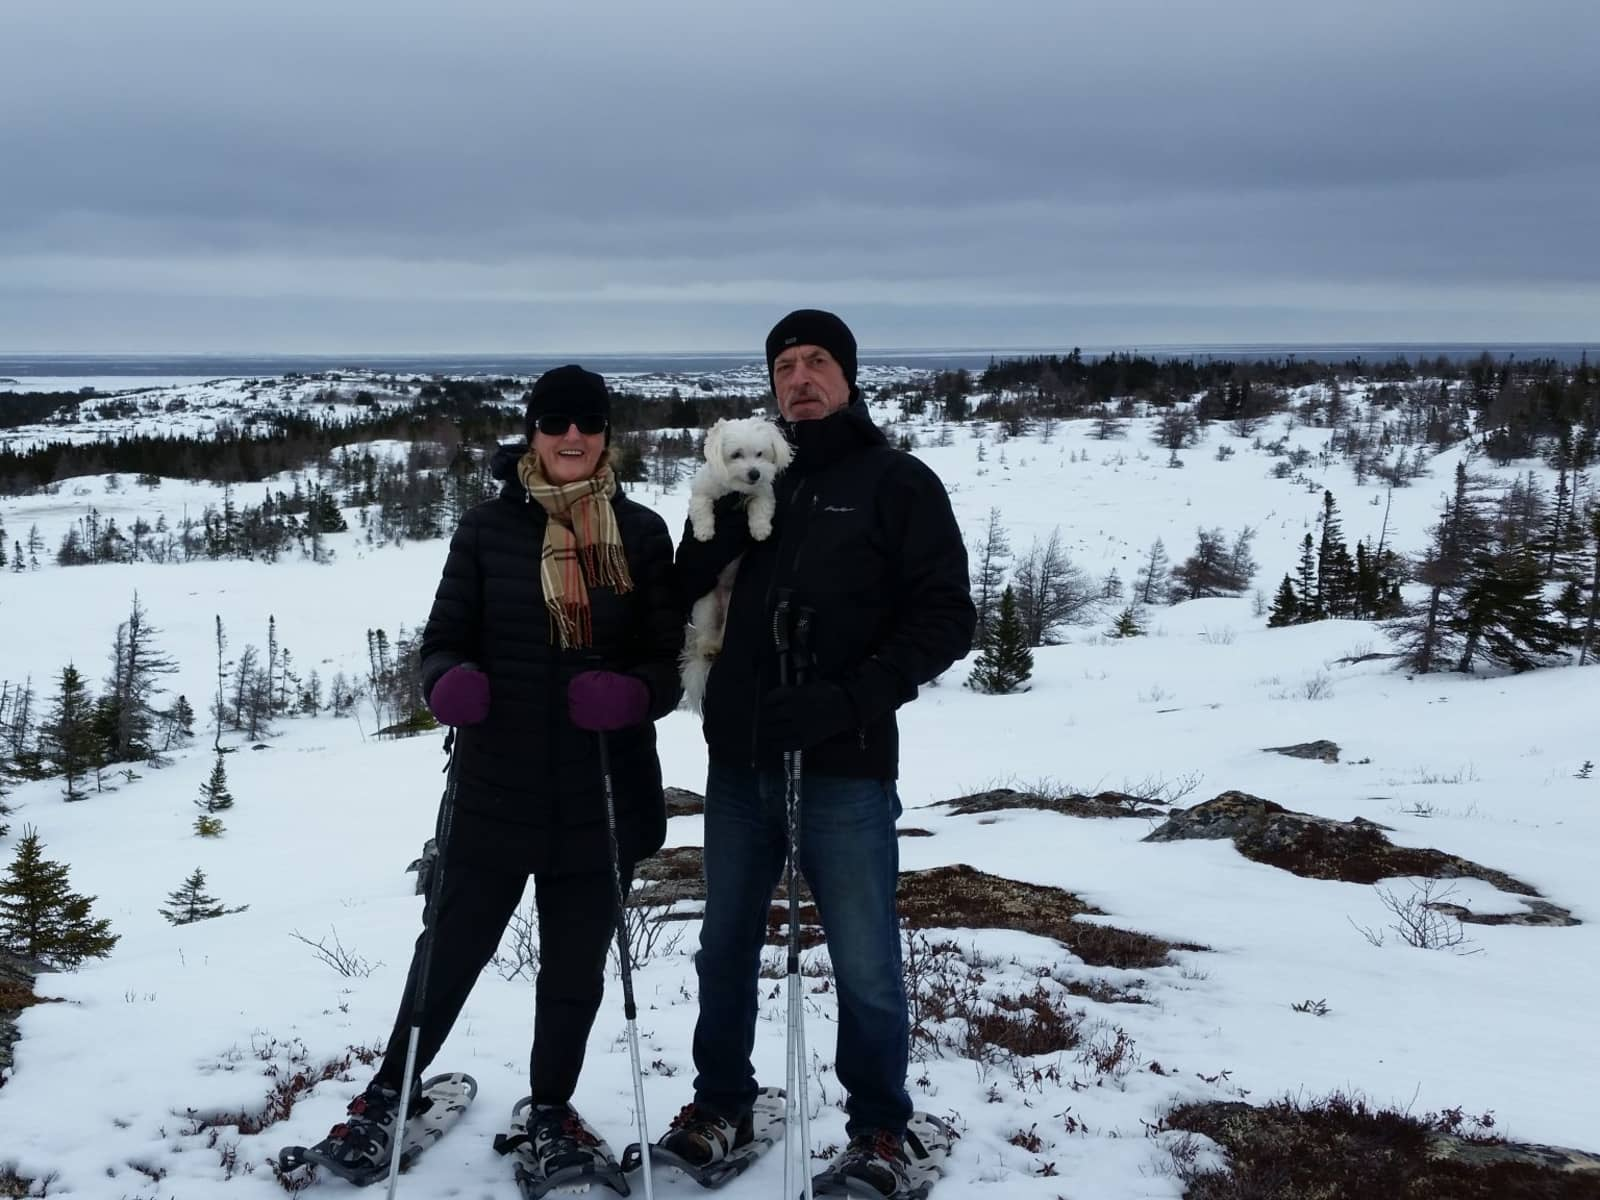 Bryan & Kathleen from St. John's, Newfoundland and Labrador, Canada